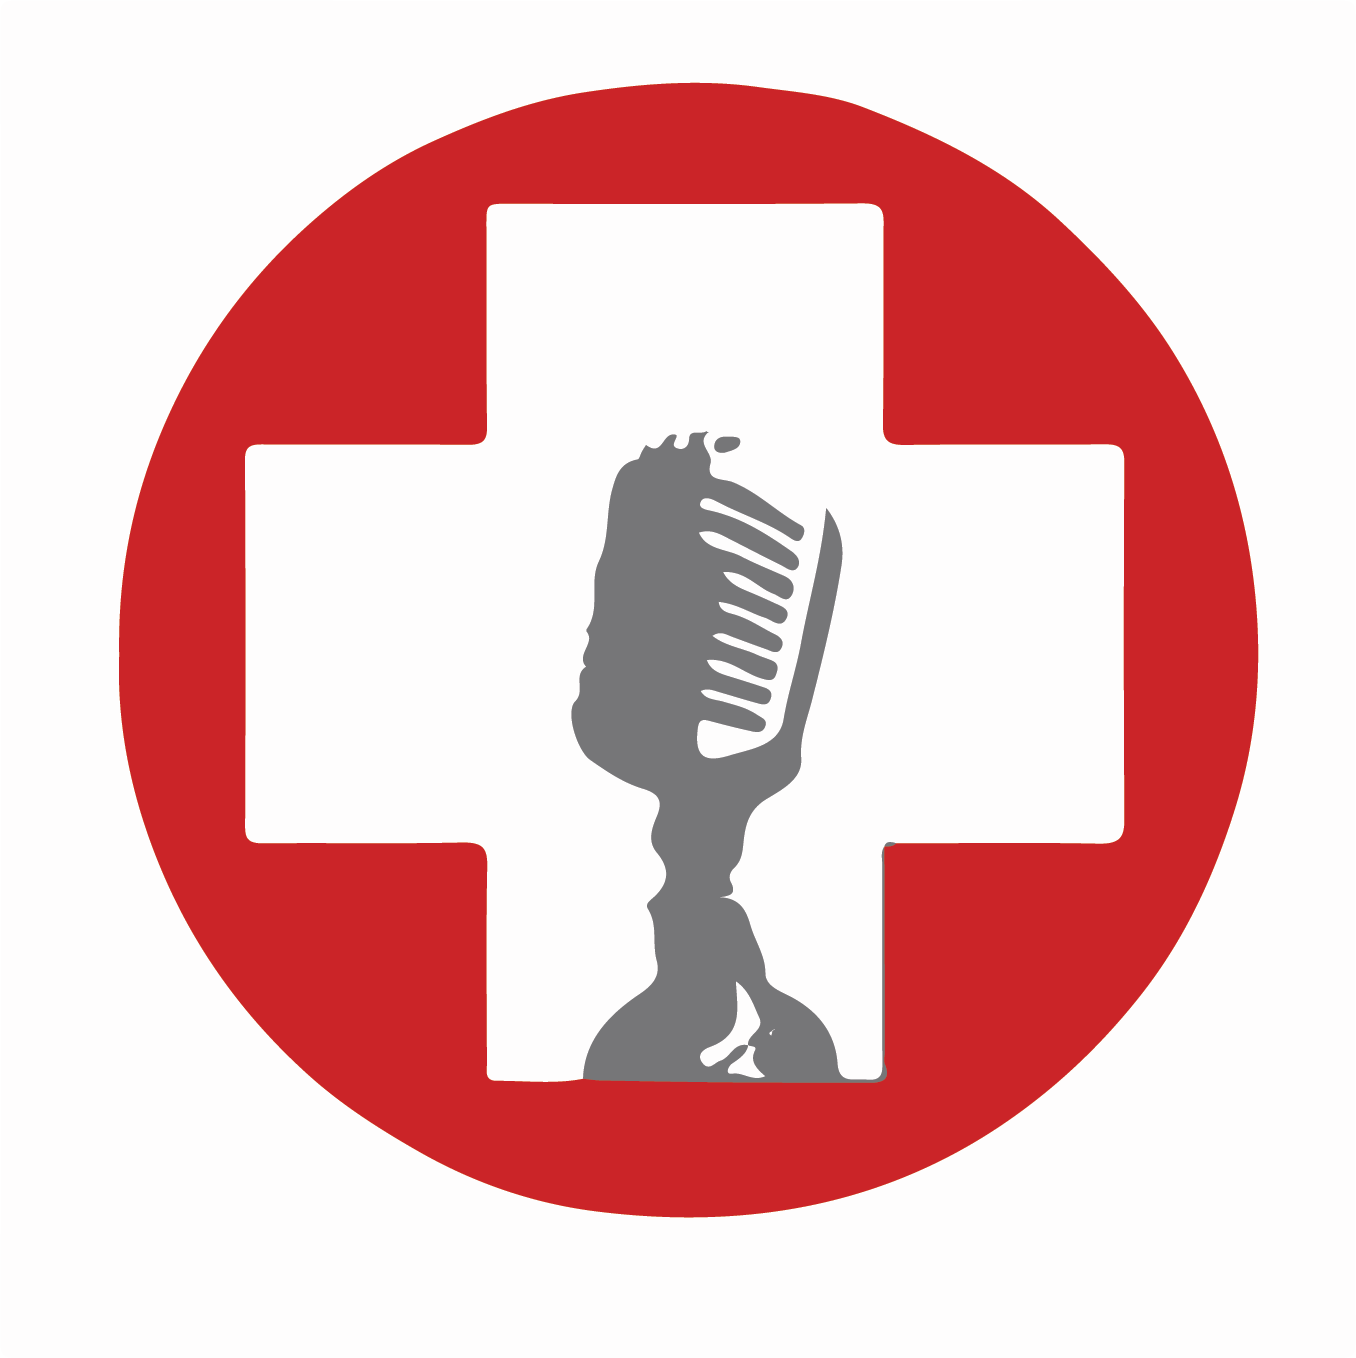 Rescue The Rescuer - Internet radio interviews and conversation for first responders